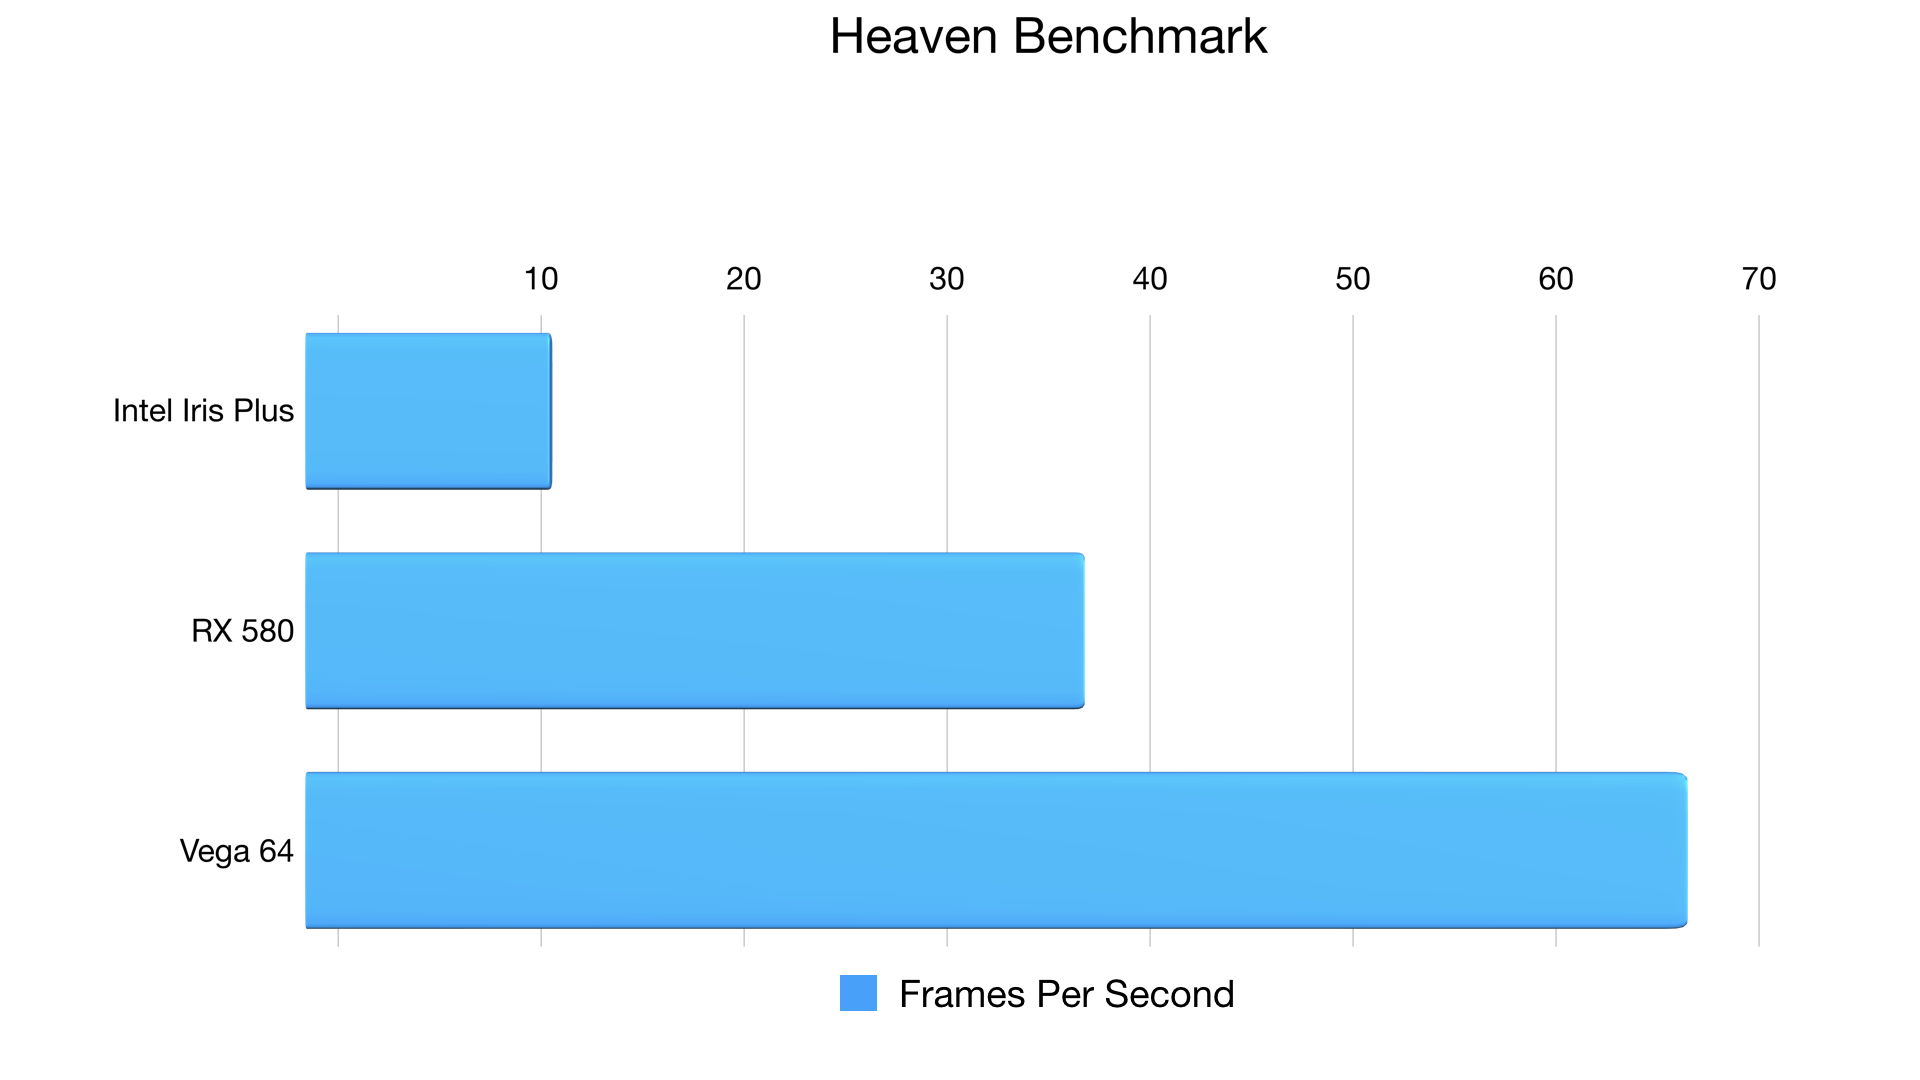 heaven-benchmark-egpu-macos-high-sierra-beta-001.png